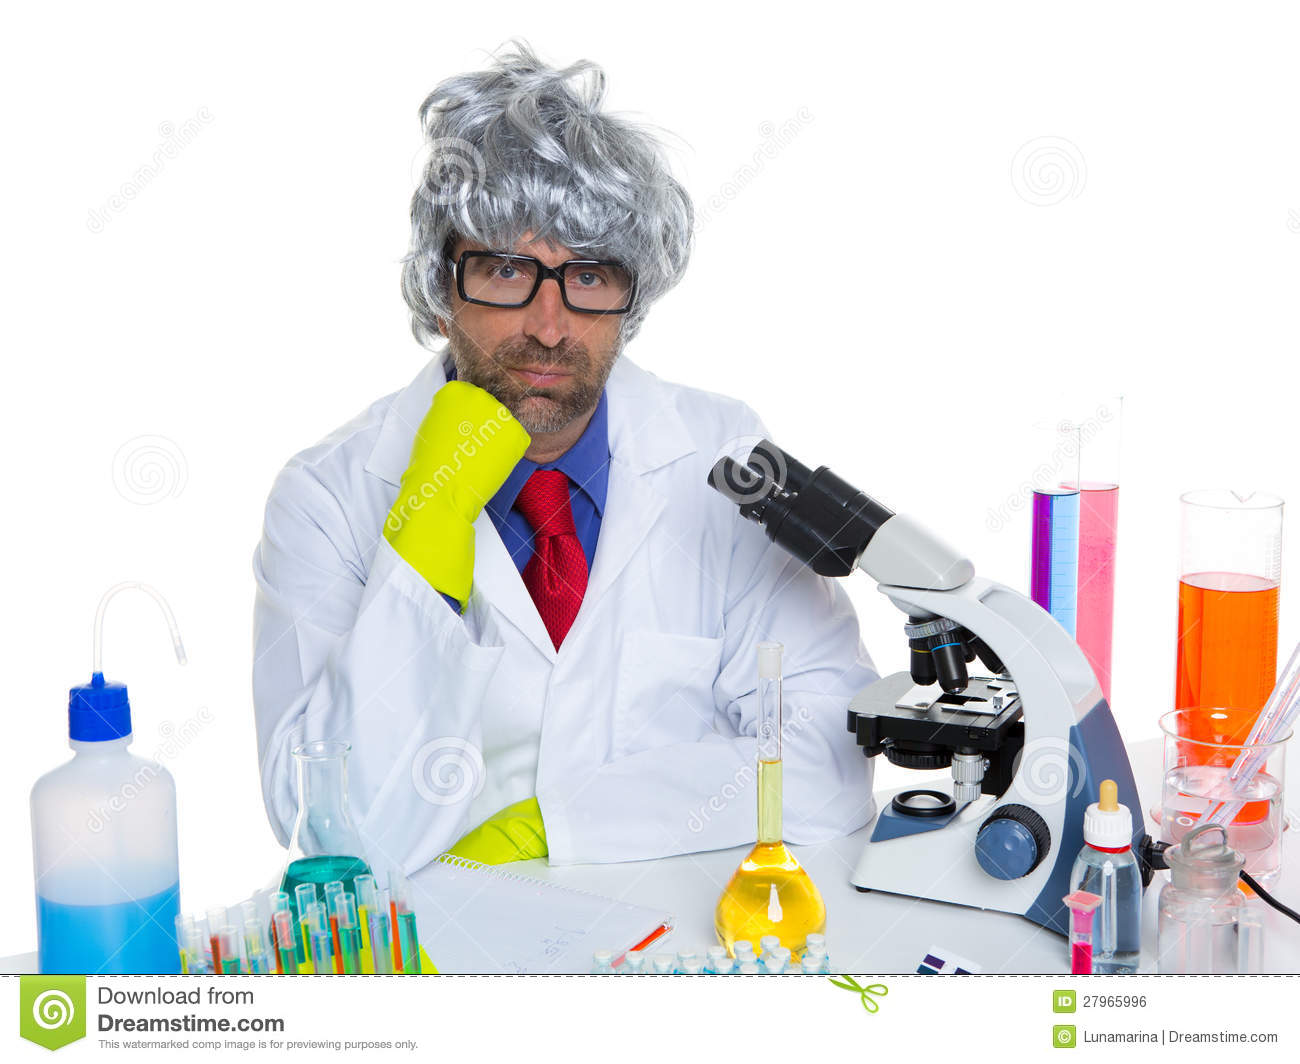 chemistry scientists Many people think of chemists as being white-coated scientists mixing strange  liquids in a laboratory, but the truth is we are all chemists.